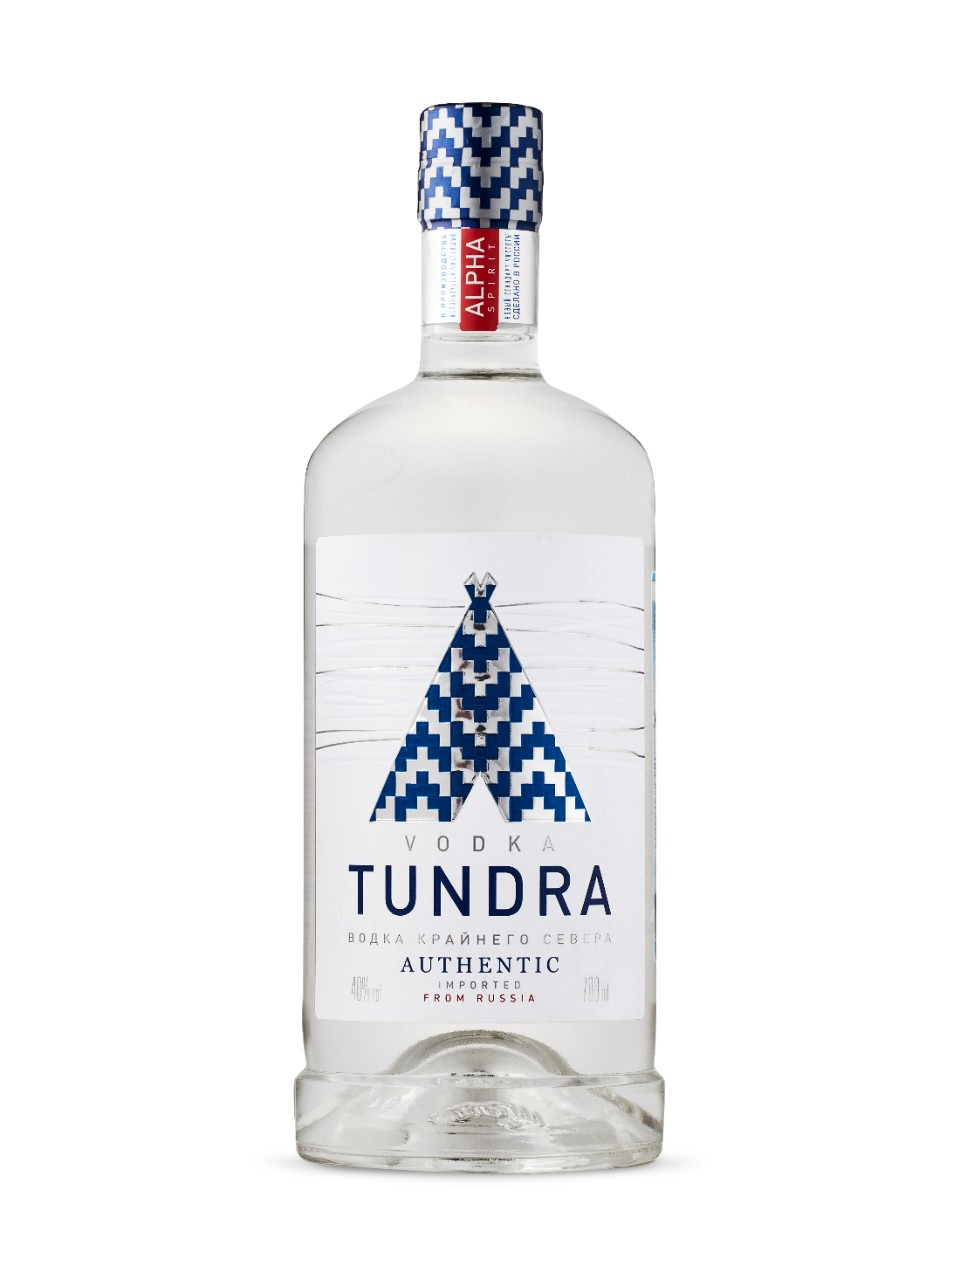 Tundra Authentic Vodka from LCBO